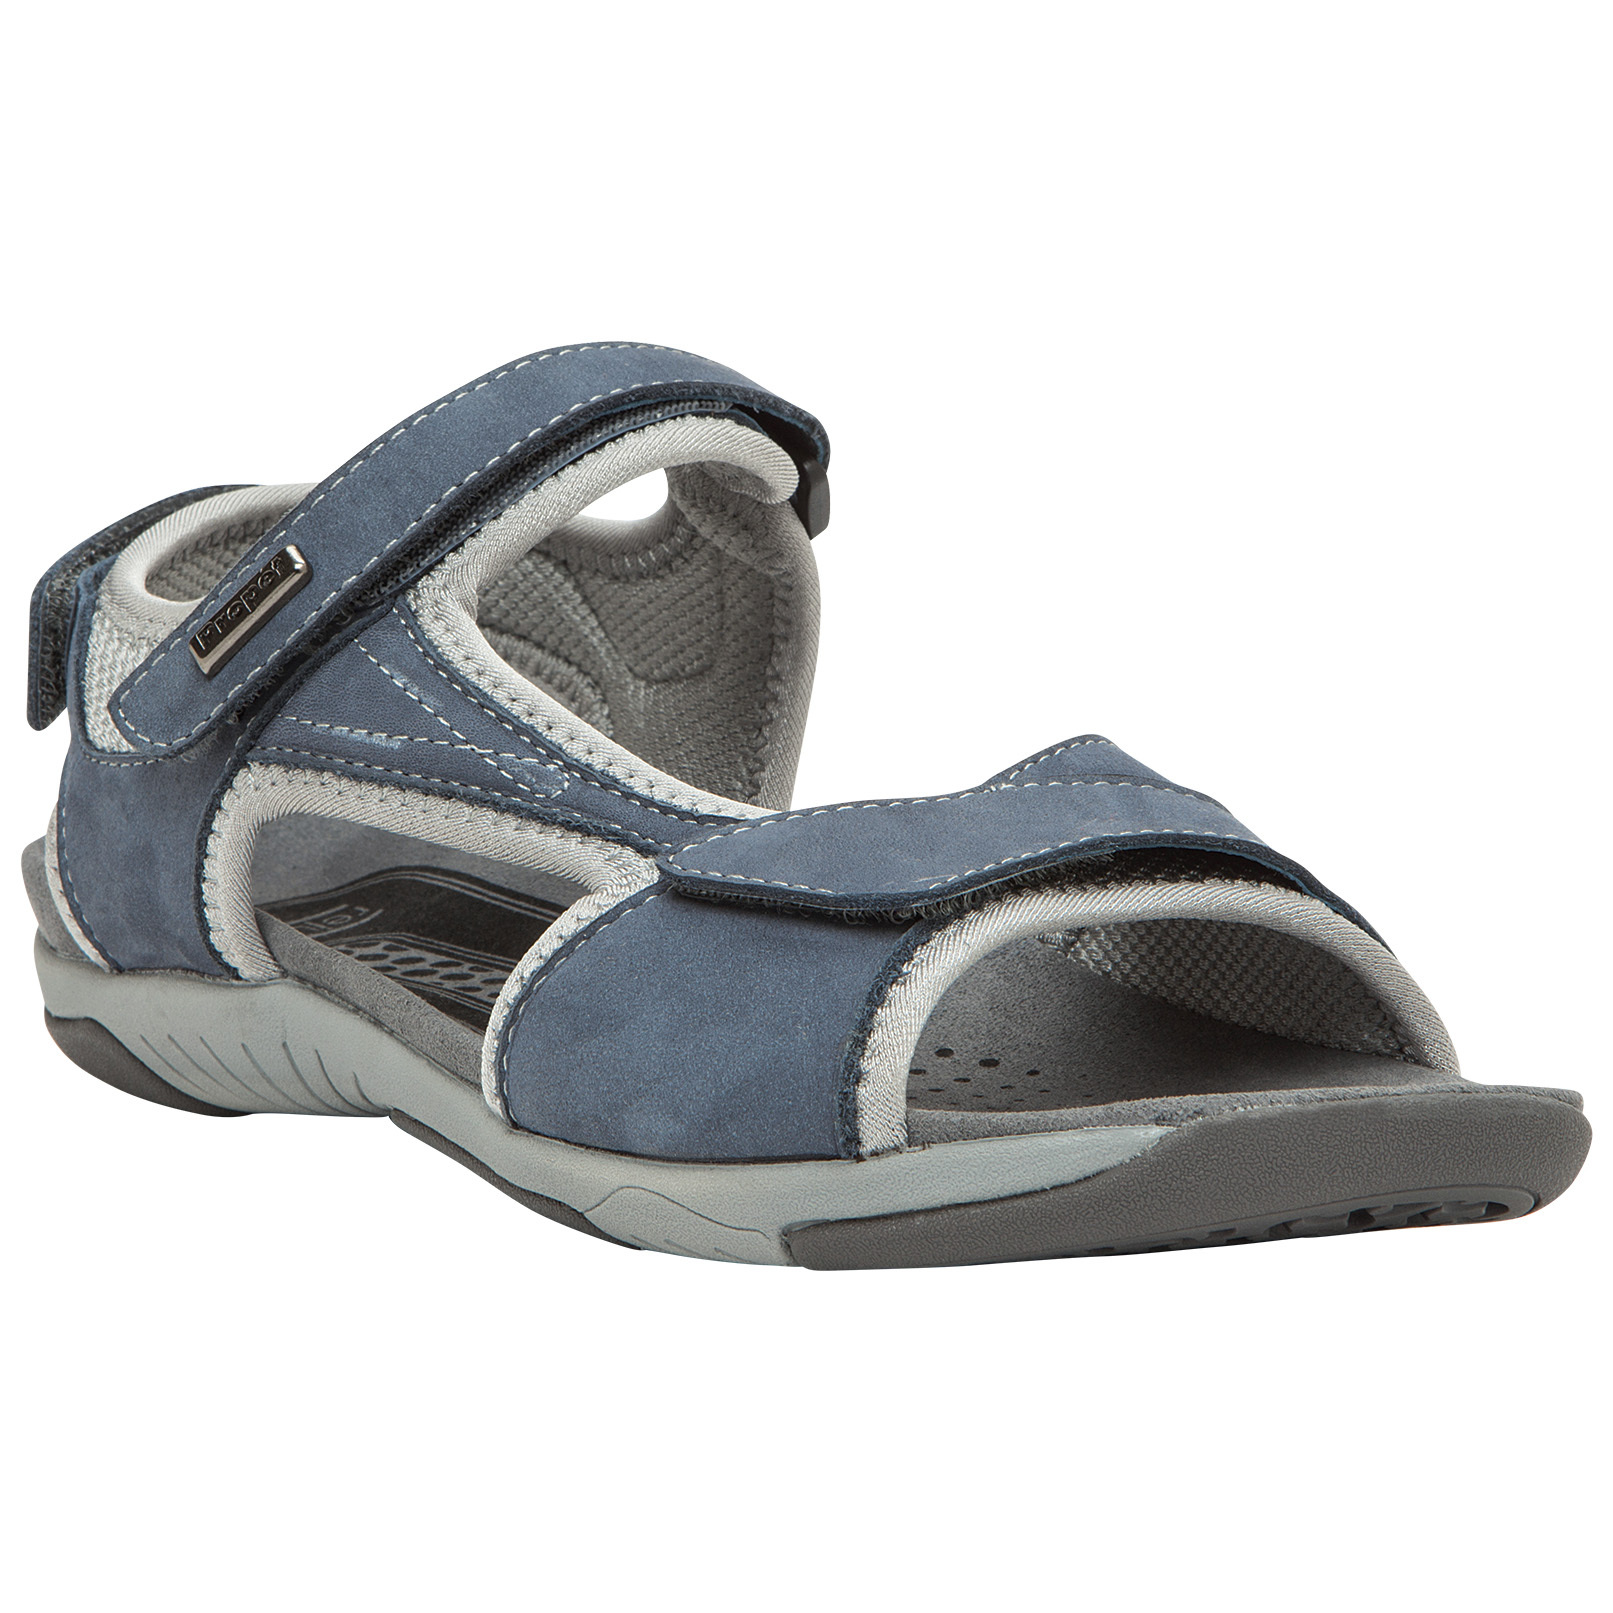 Women's Prop t Helen Sandals. Summertime classics with a little something extra in the comfort department. Helen Sandals feature Prop t's Rejuve Motion Technology... designed to encourage a natural stride while comforting and relieving lower-body joint pain! Rejuve Technology is totally podiatrist-designed, and you'll feel it in every step. Check 'em out, in medium and wide sizes!Rejuvenate your summer footwear: Nubuck leather (depending on color choice) upper with comfort padding 3 hook-and-loop straps (forefoot, instep and heel) for fully adjustable fit Contoured insole with microfiber lining Cushioning EVA midsole for all-day comfort and support High-performance rubber outsole for traction and long-lasting support Each approx. 7 ozs.State Color, Size and Width, as available in the Shopping Cart. - $79.99